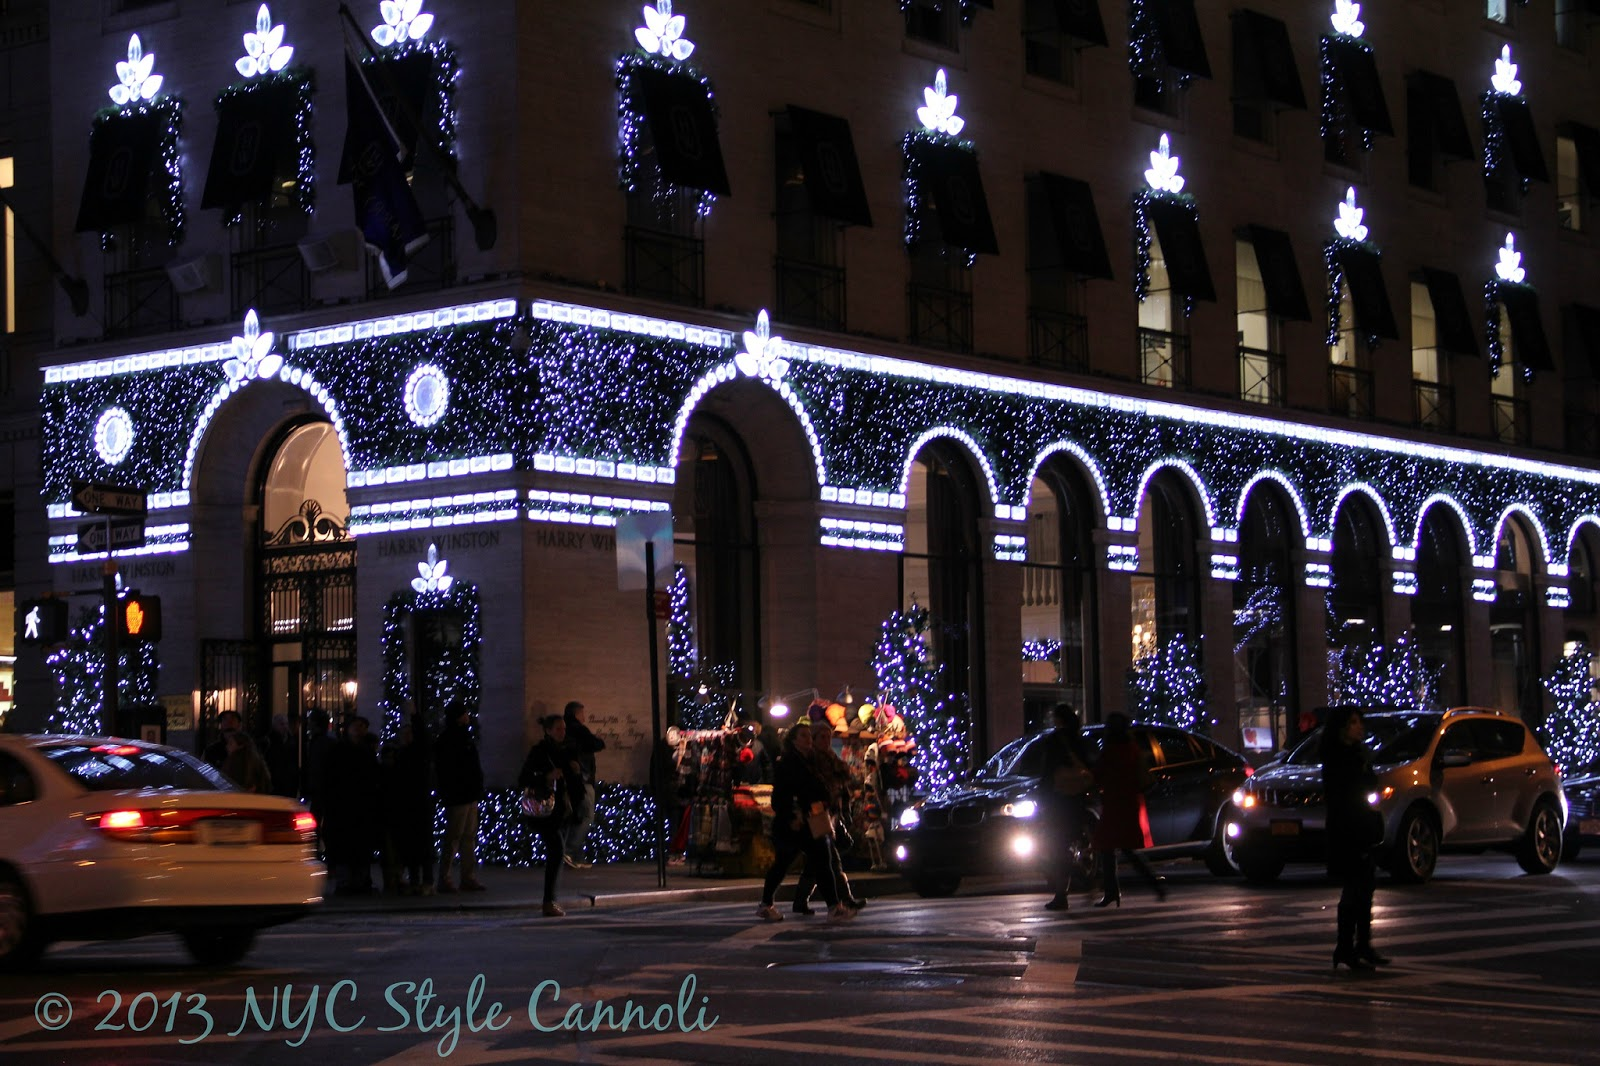 2016 Holiday Windows Reveal Dates | NYC, Style & a little Cannoli